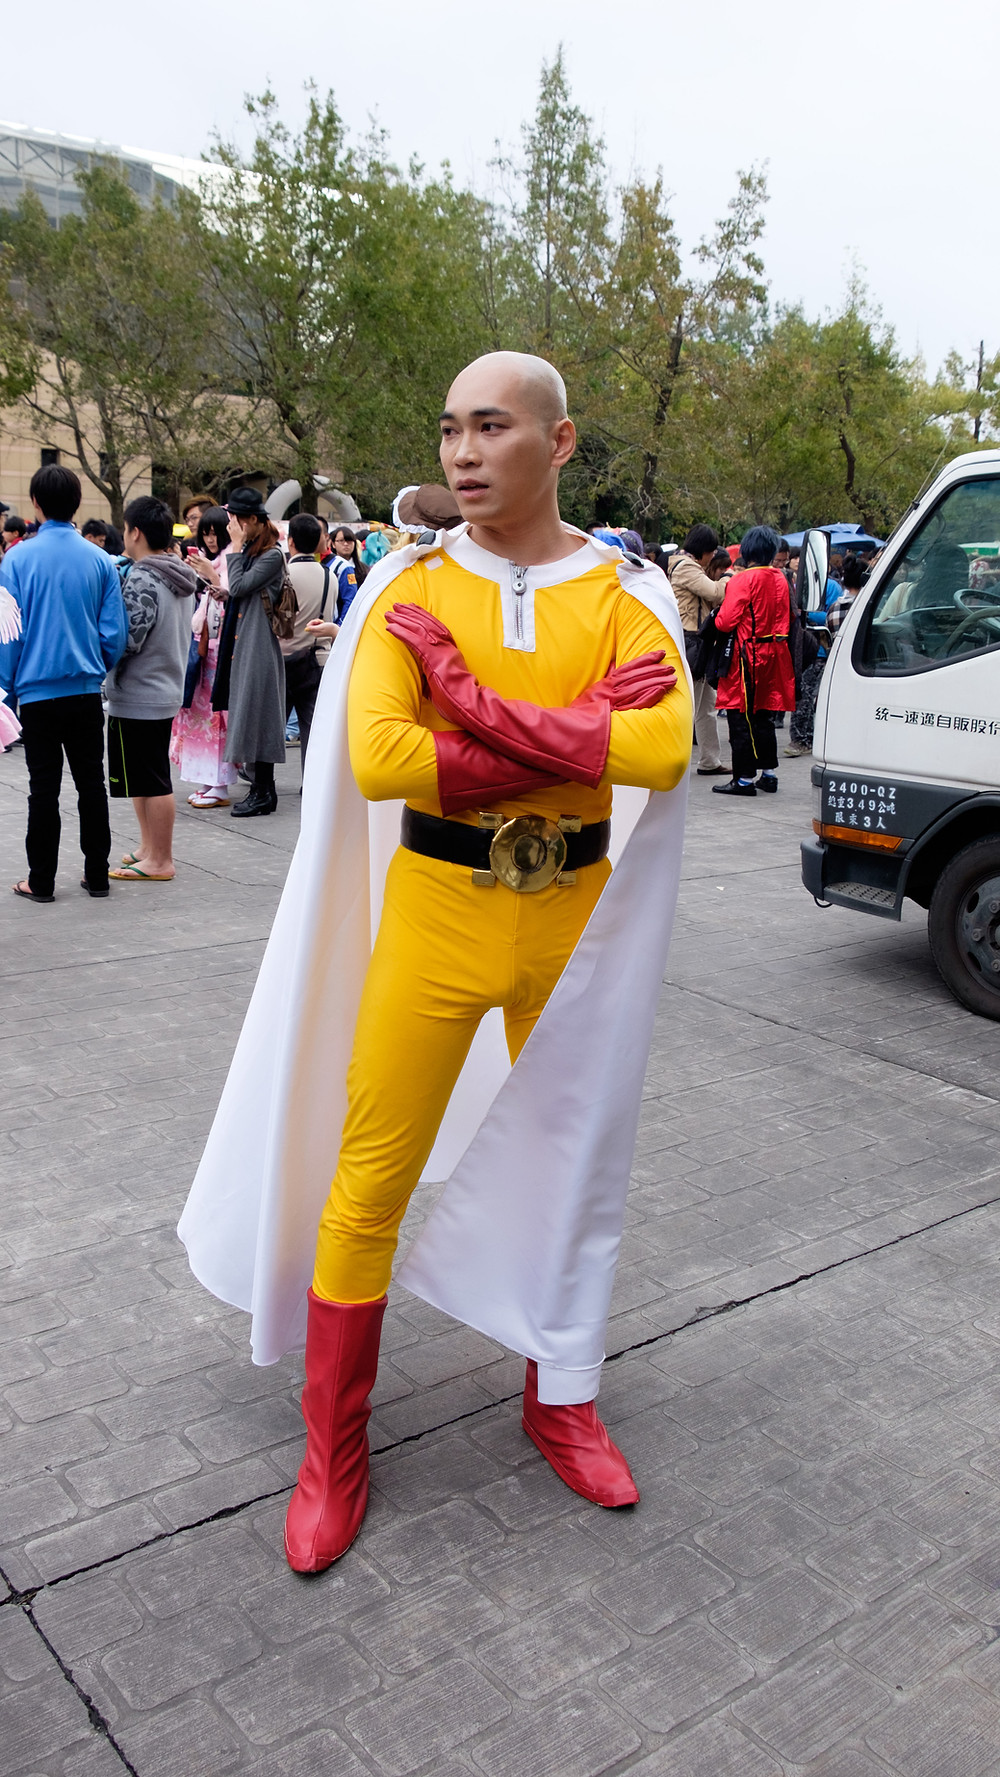 One Punch Man cosplay in Japan